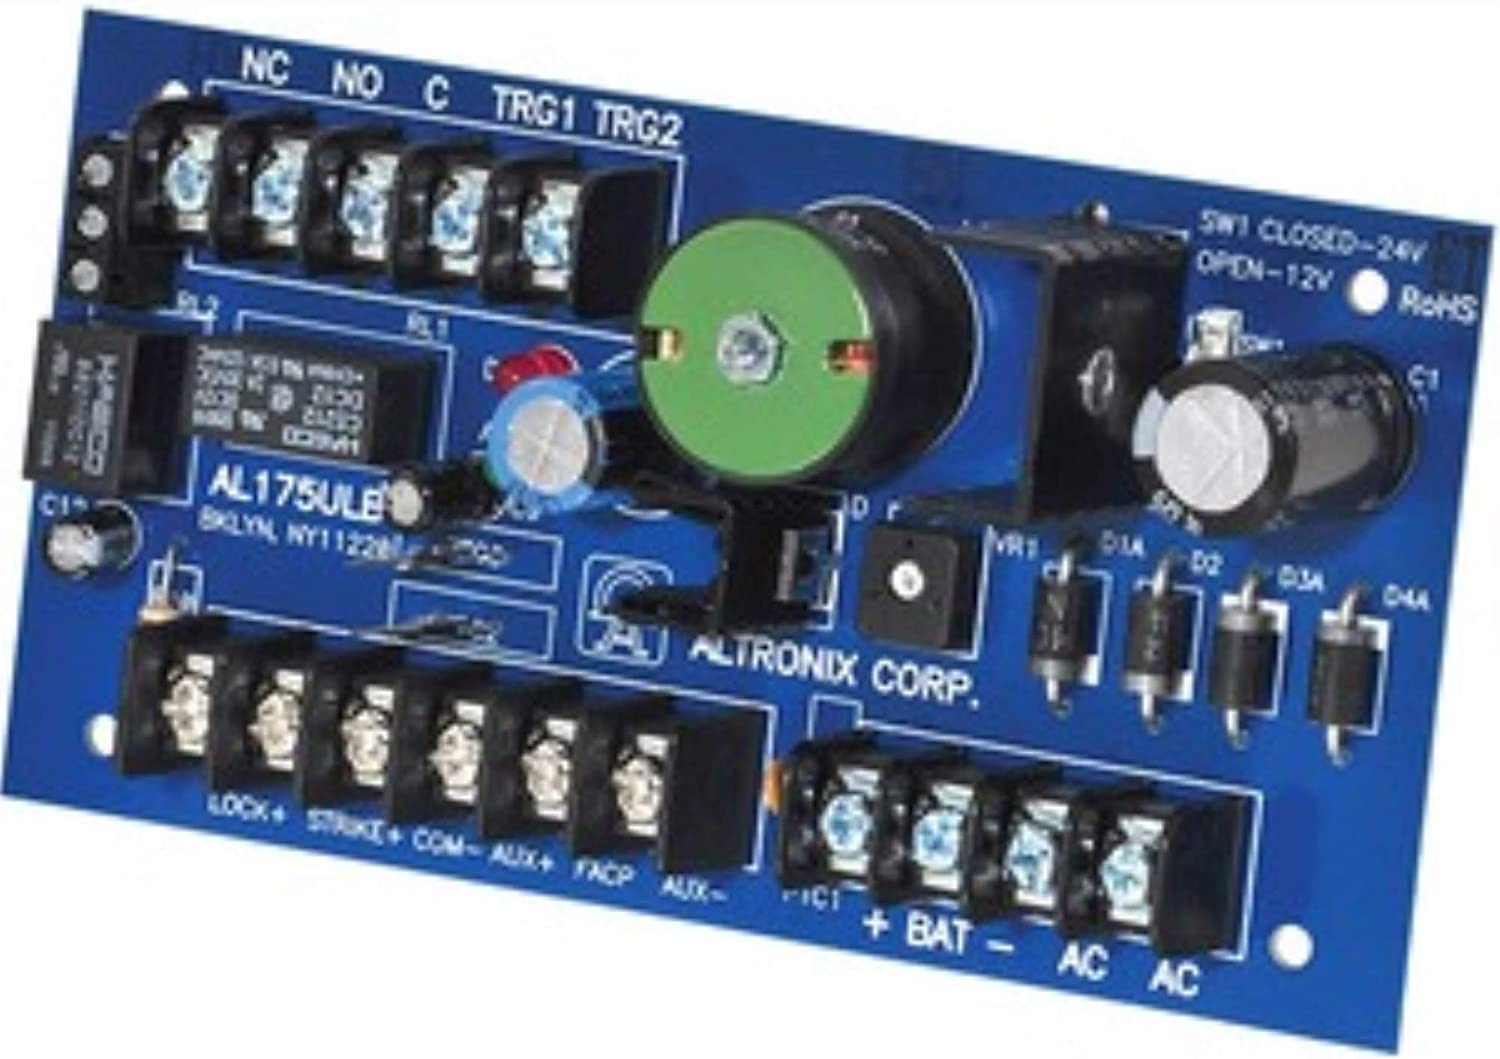 ALTRONIX AL175ULB Power Supply 2Out 12Dc Or 24Dc @ 1.75A